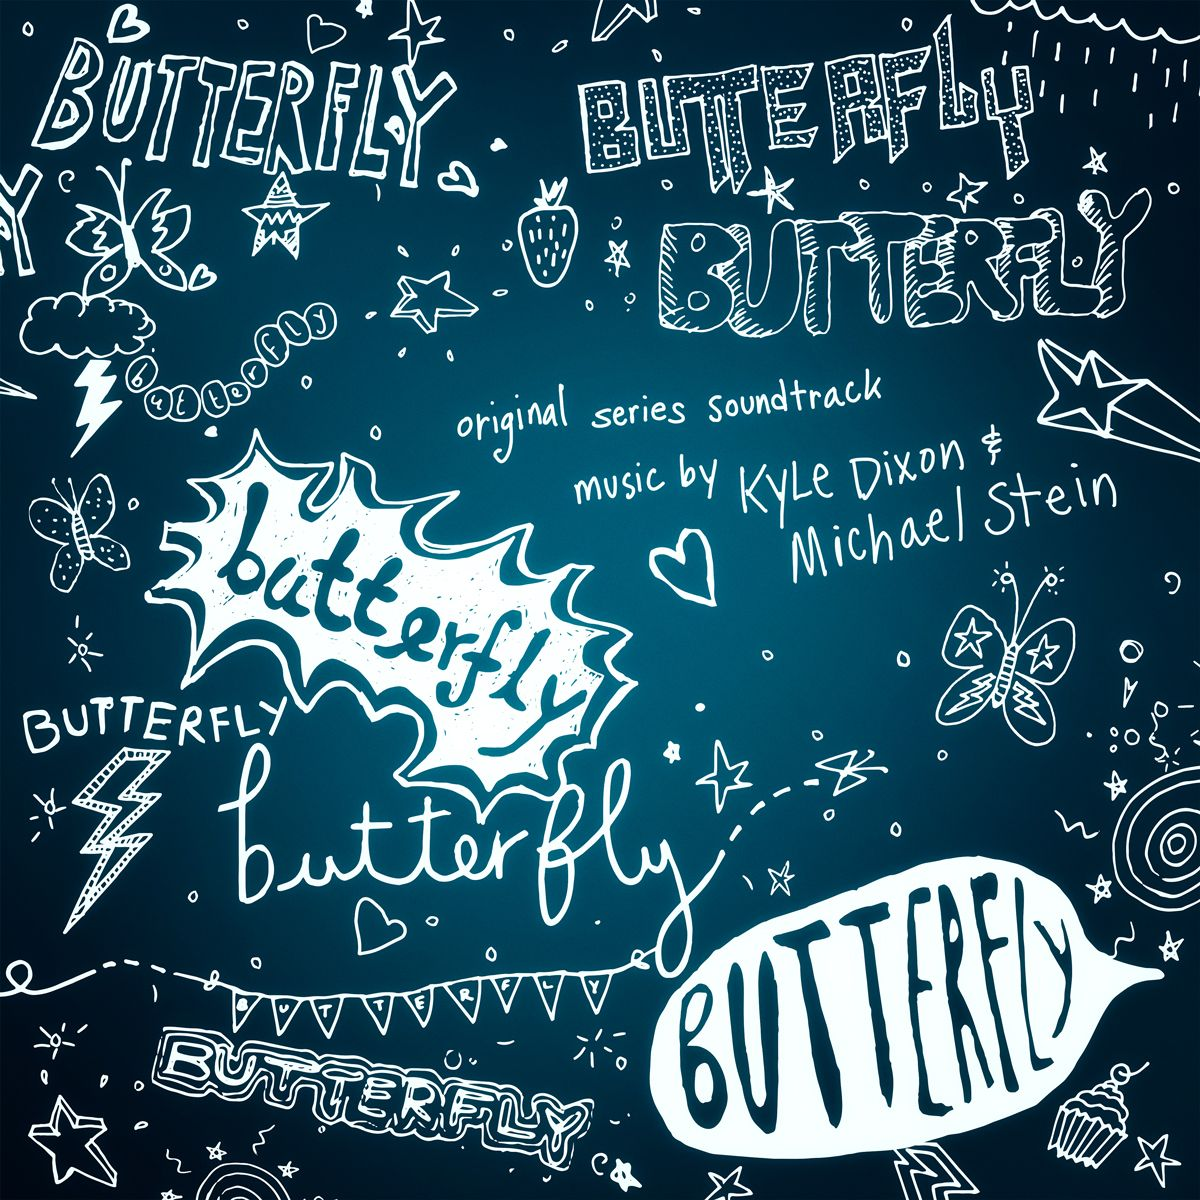 PREMIERE: Hear Kyle Dixon's and Michael Stein's 'A Long Way to Go' from 'Butterfly'